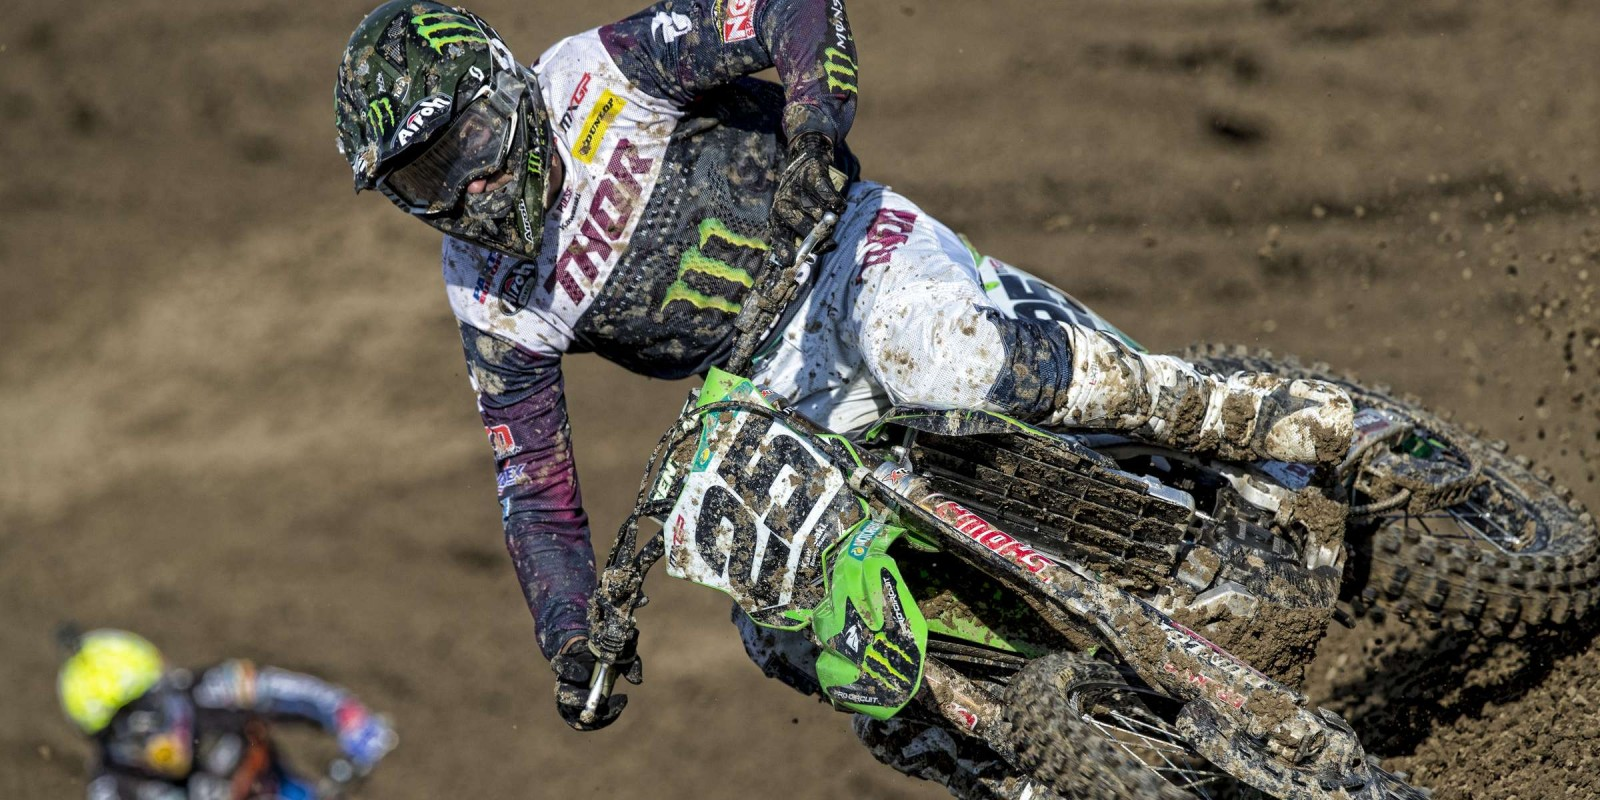 Clement Desalle at the 2018 Grand Prix of Bulgaria